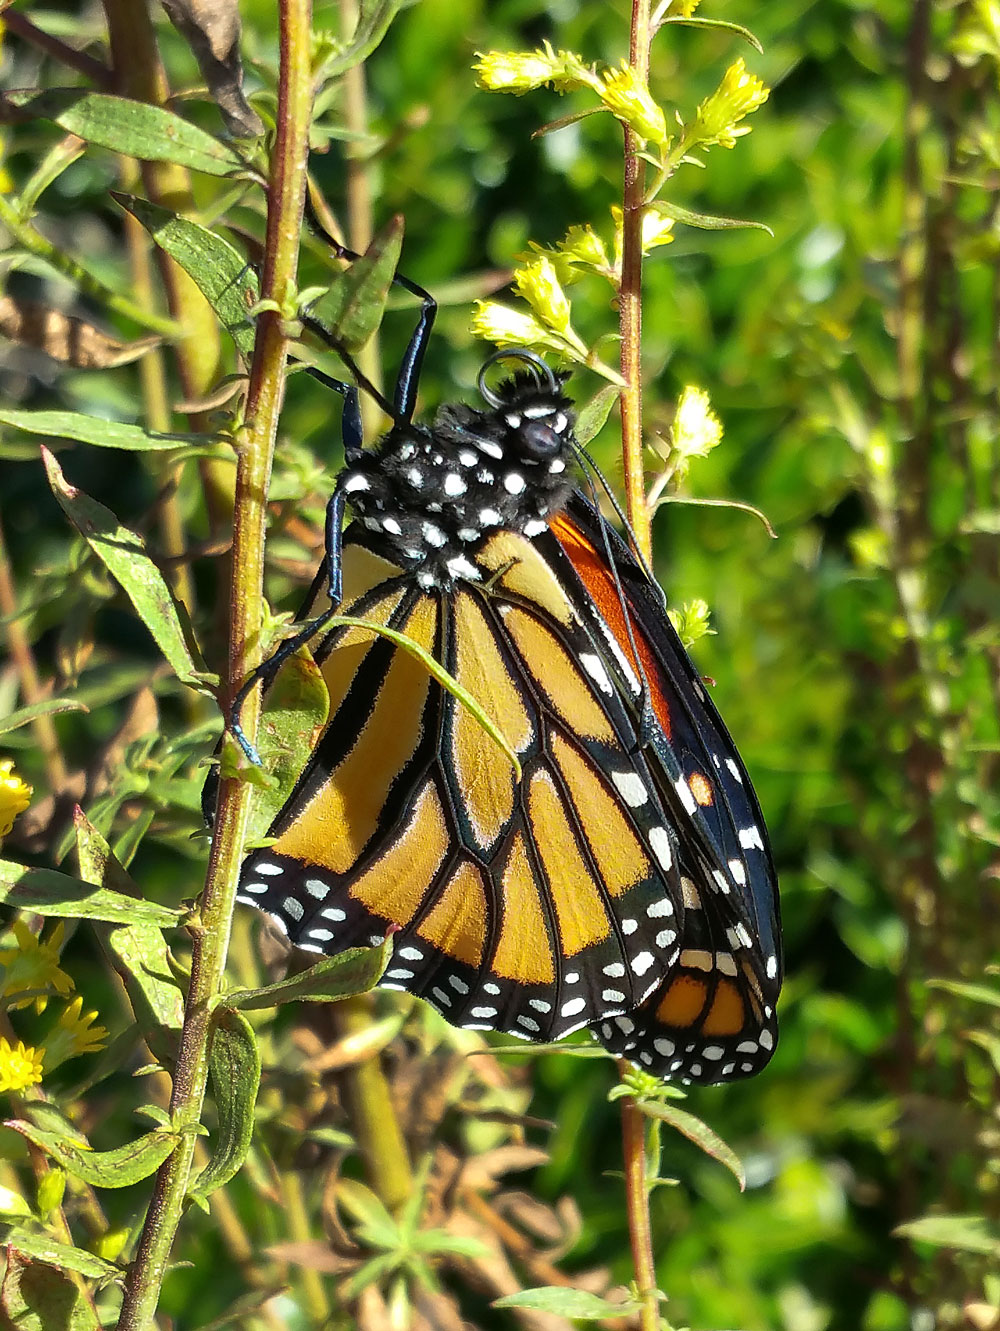 Here's the monarch that emerged one day later from the chrysalis pictured above.